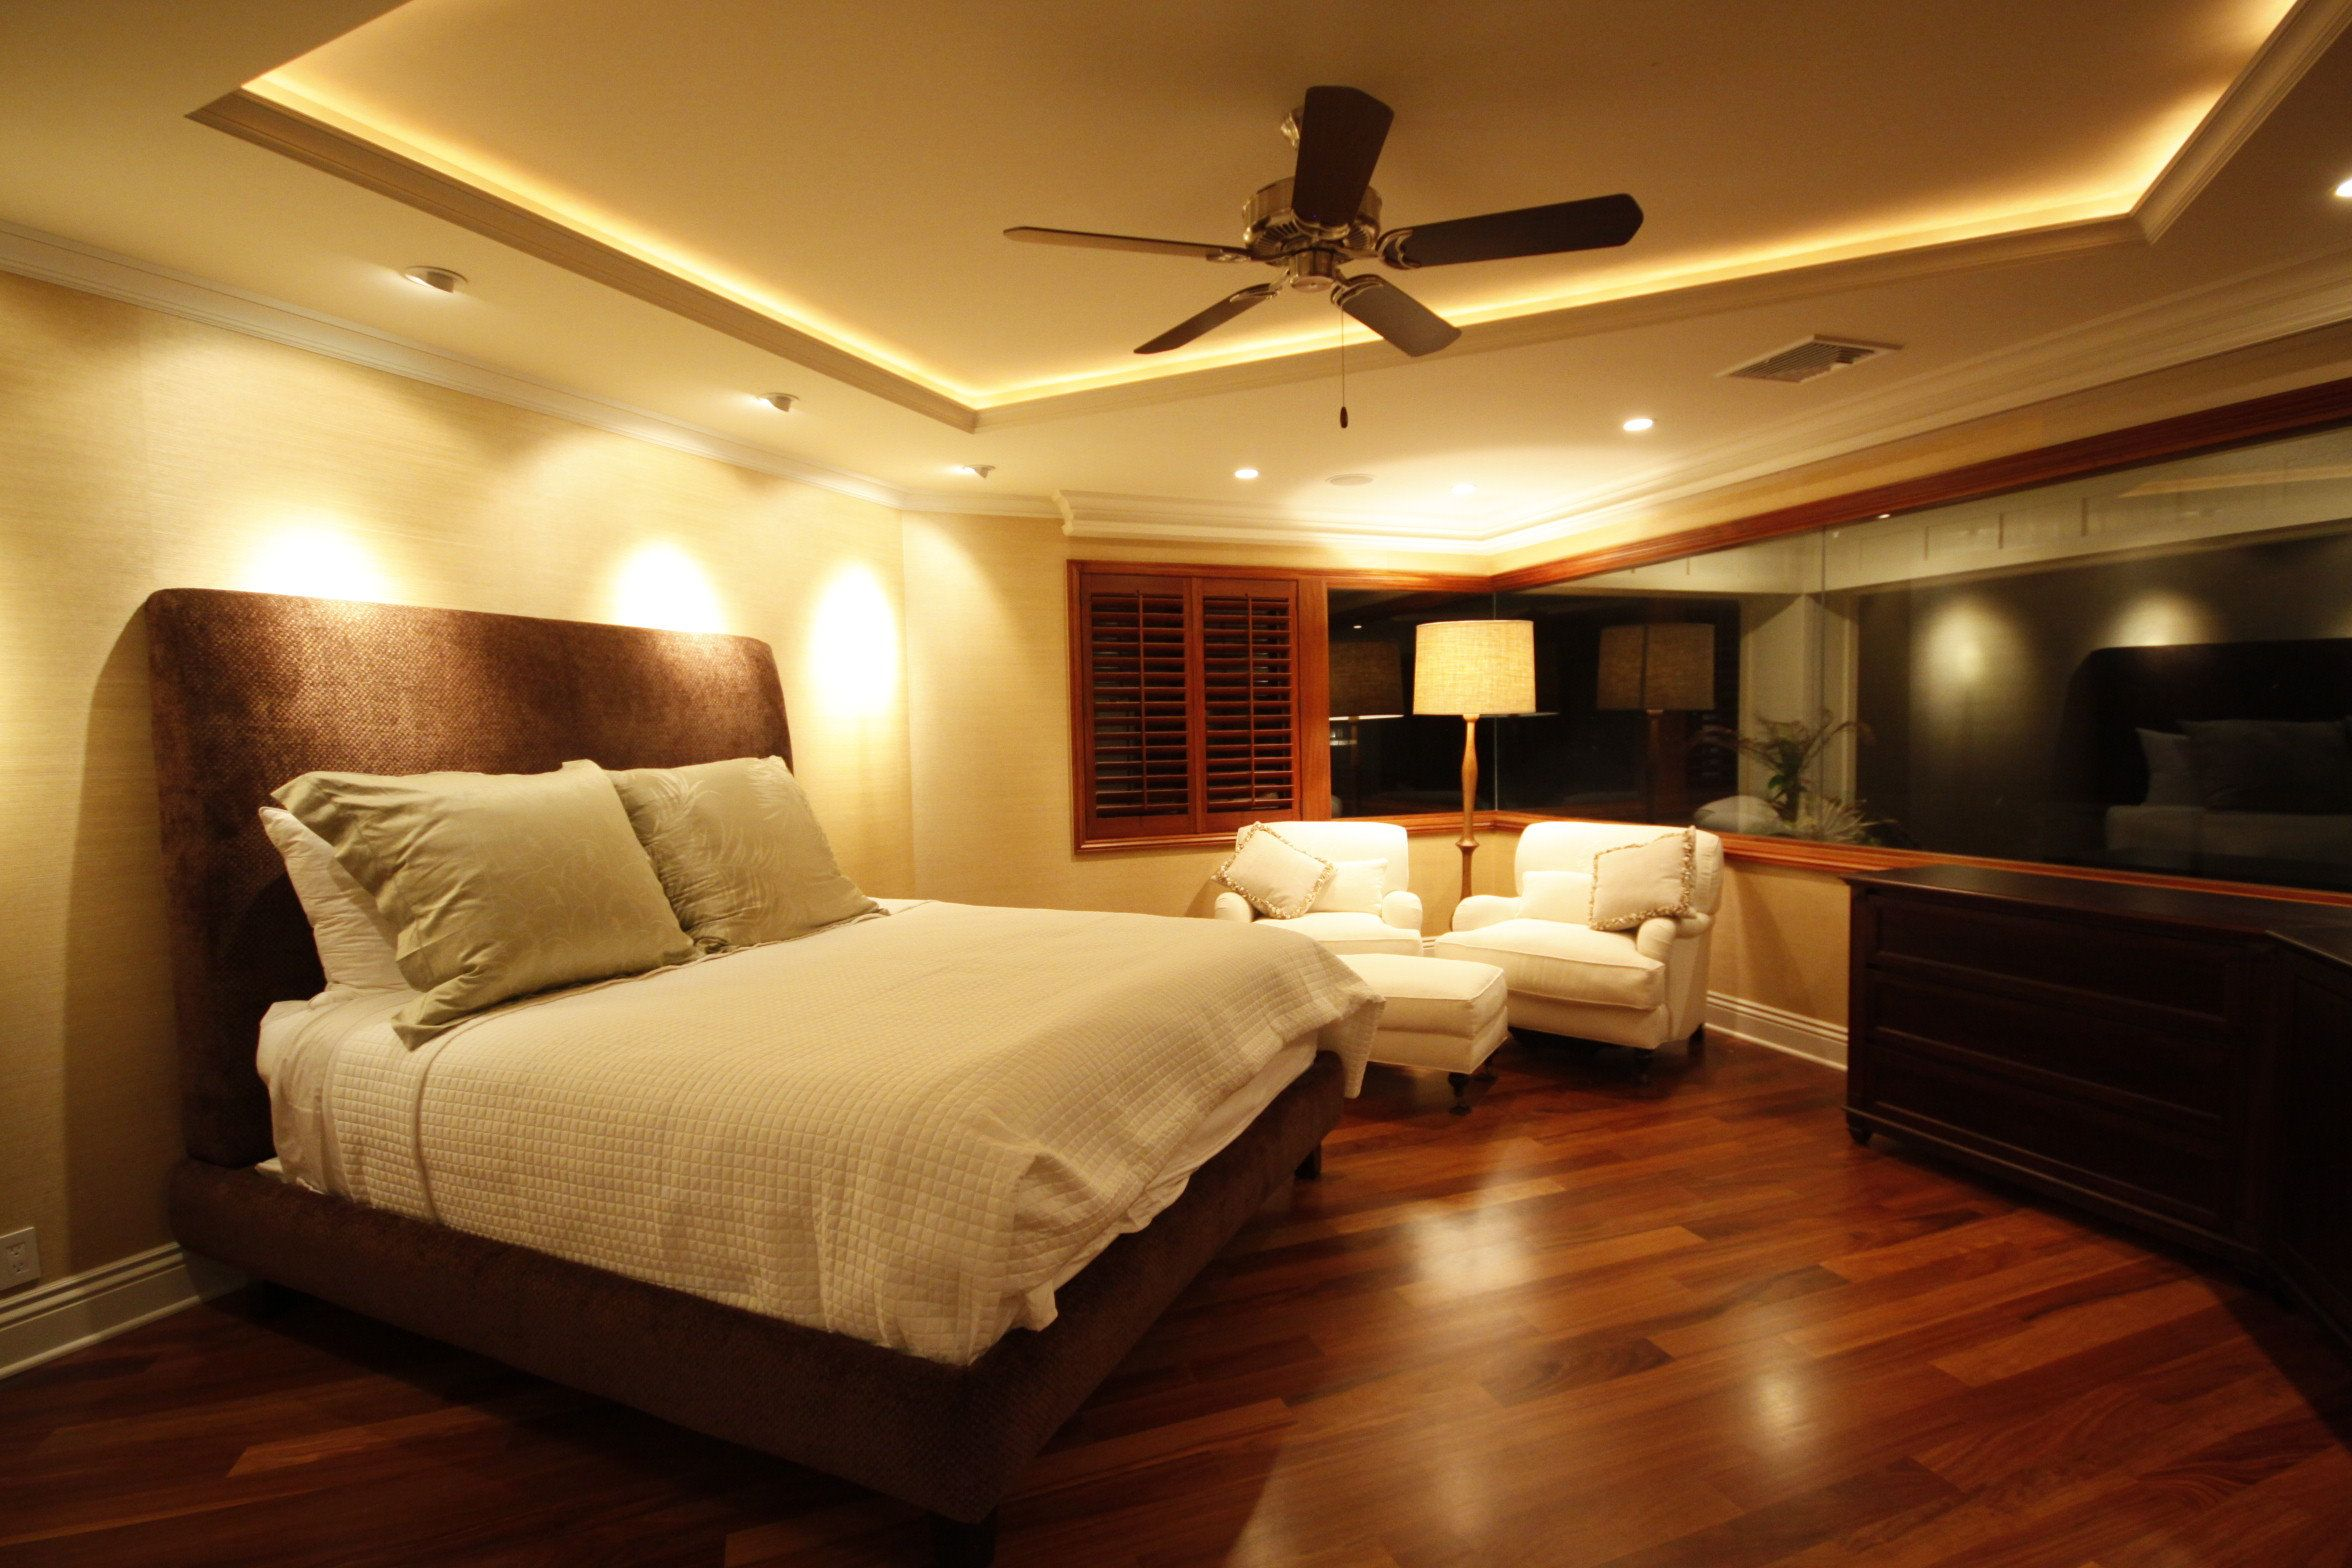 Appealing master bedroom modern decor with wooden floors for Beautiful master bedroom designs